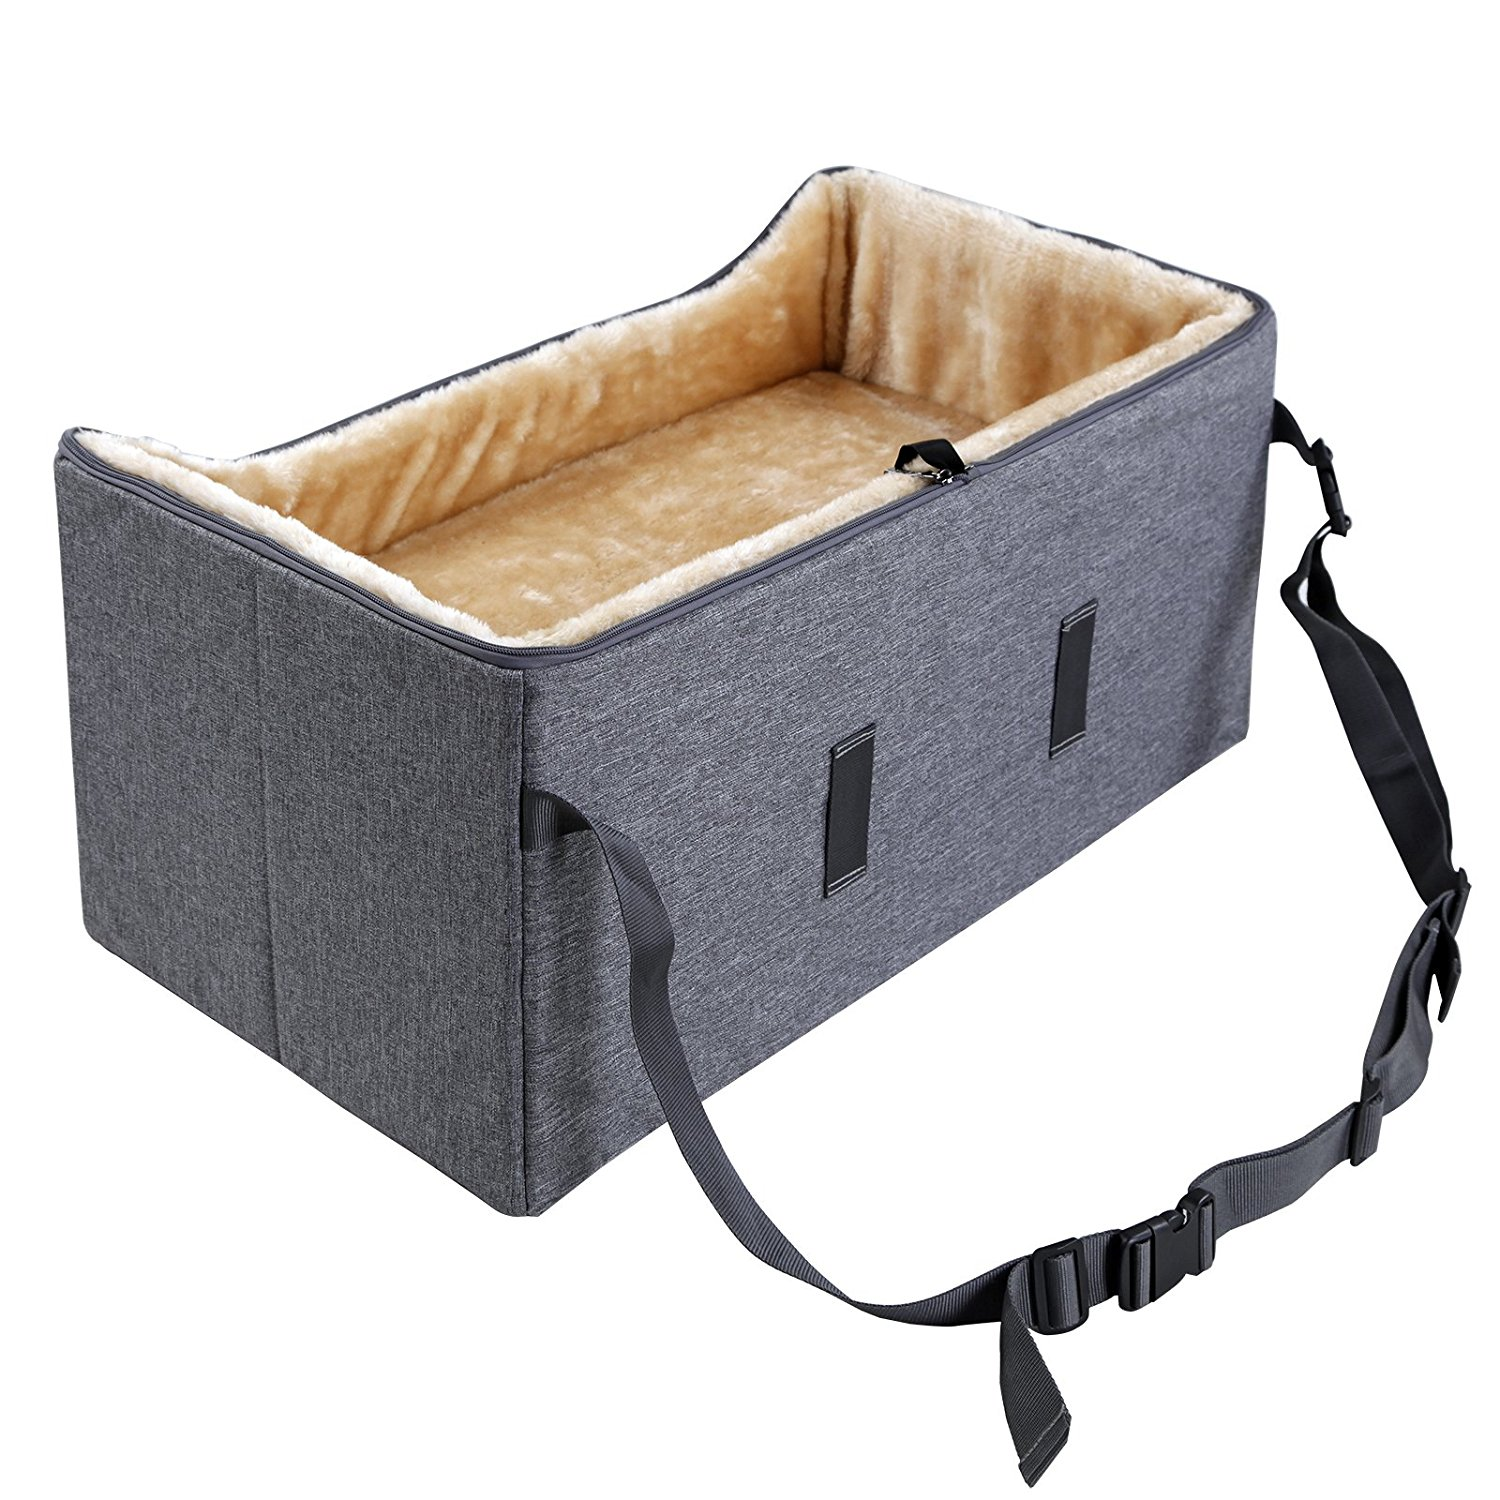 Top 5 Best dog carrier for car seats reviews - Best top care with dogs